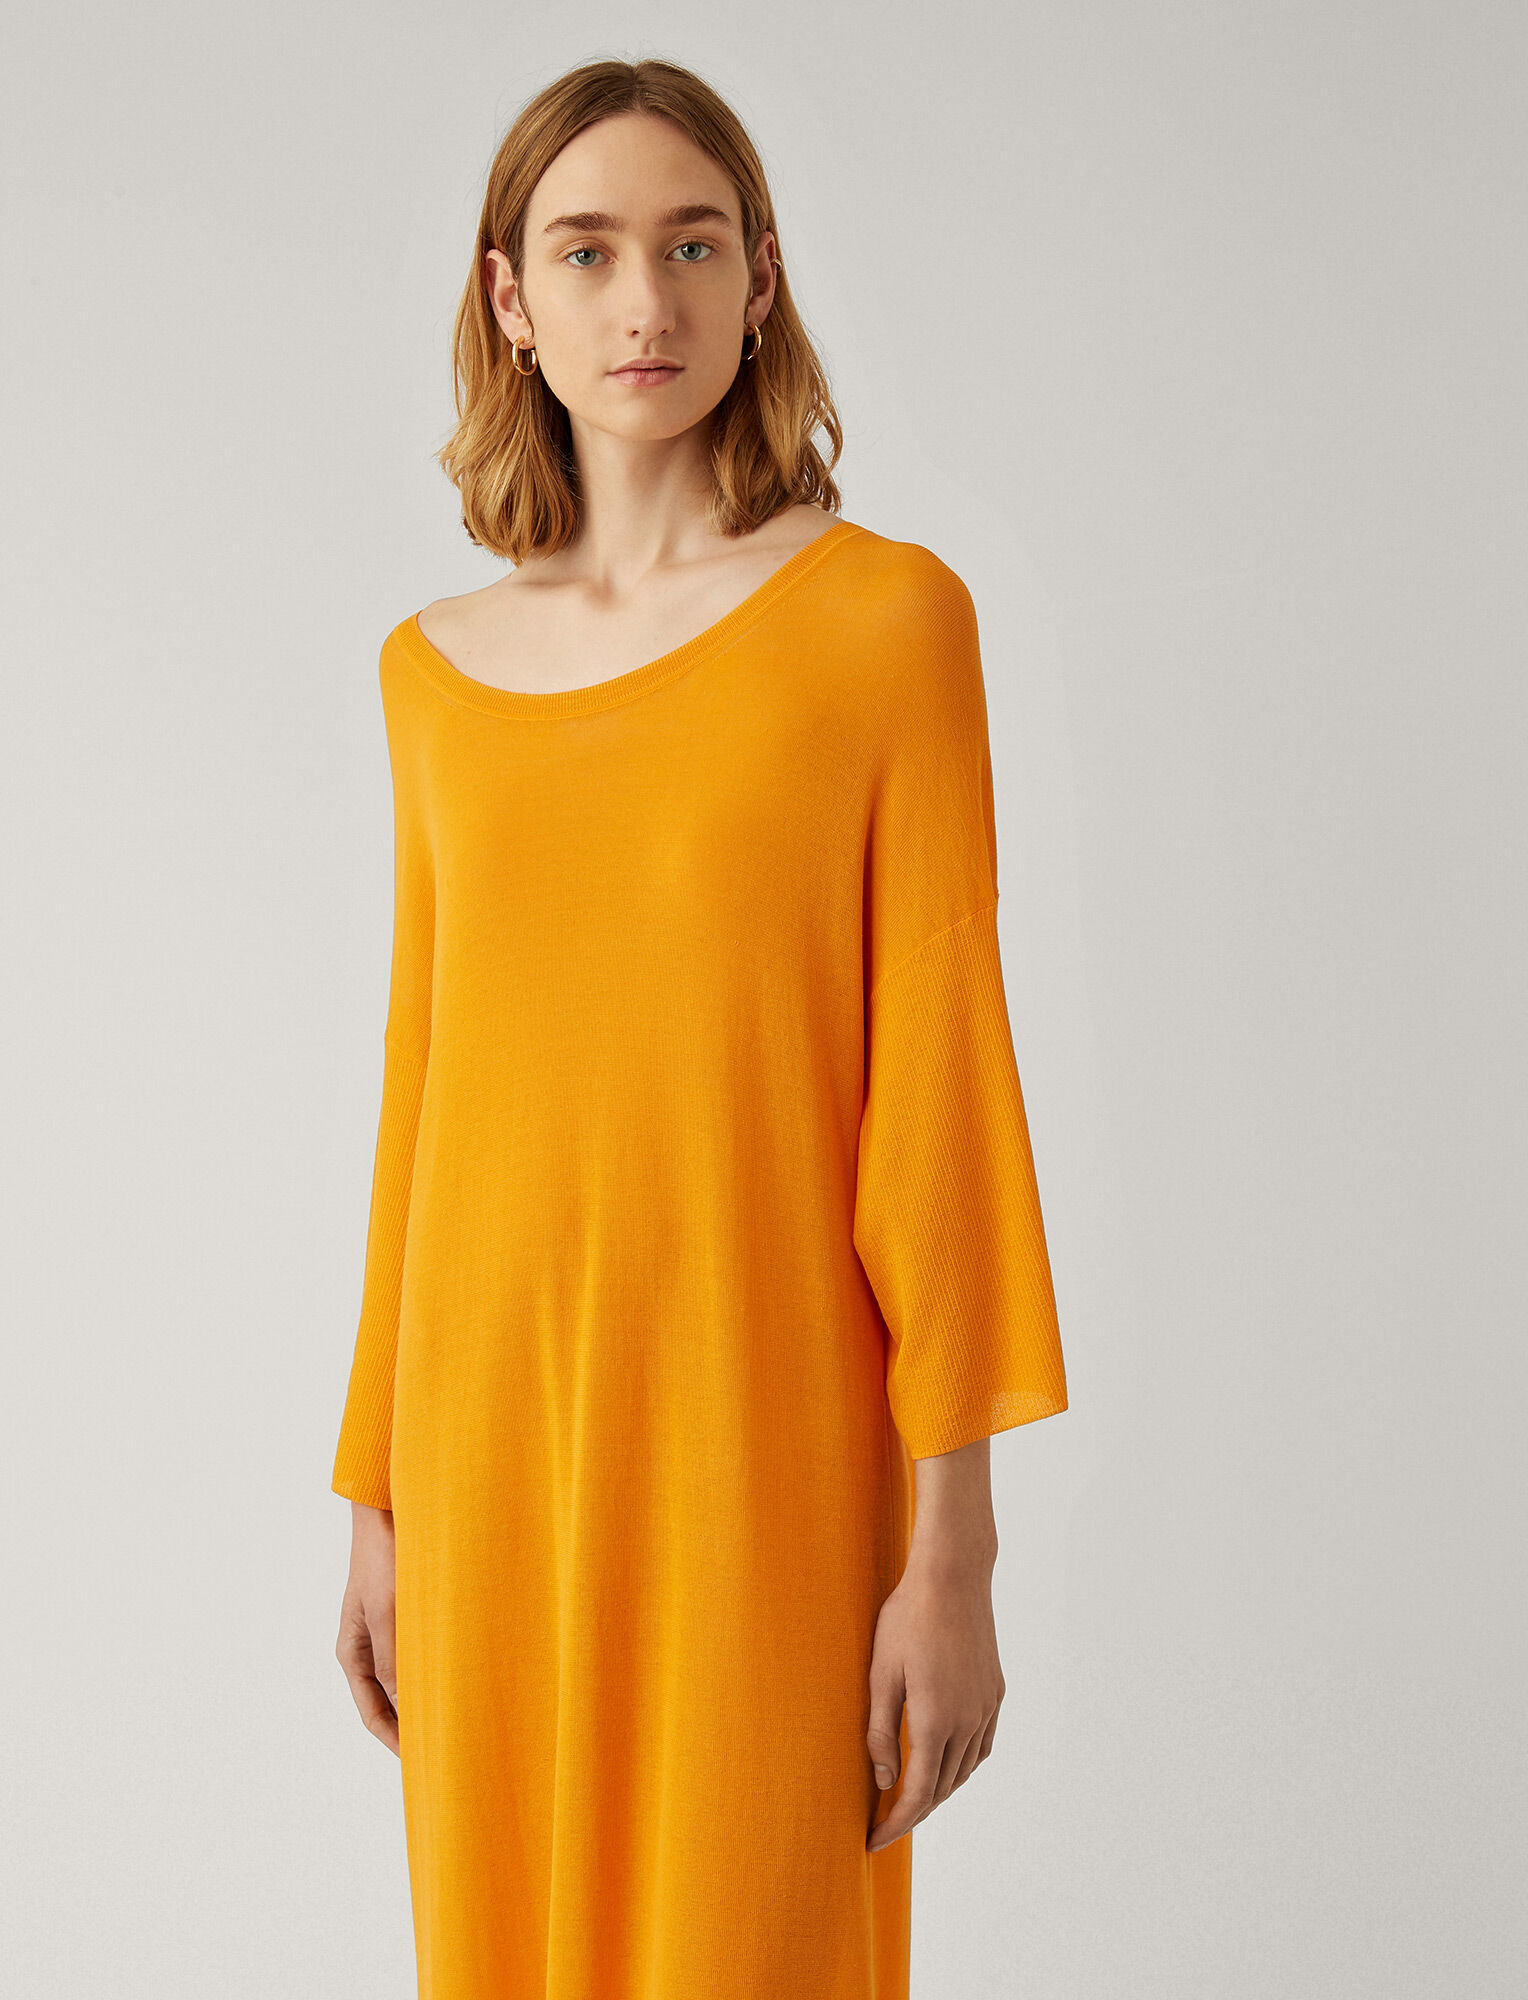 Joseph, Darline Sheer Cotton Dress, in TANGERINE